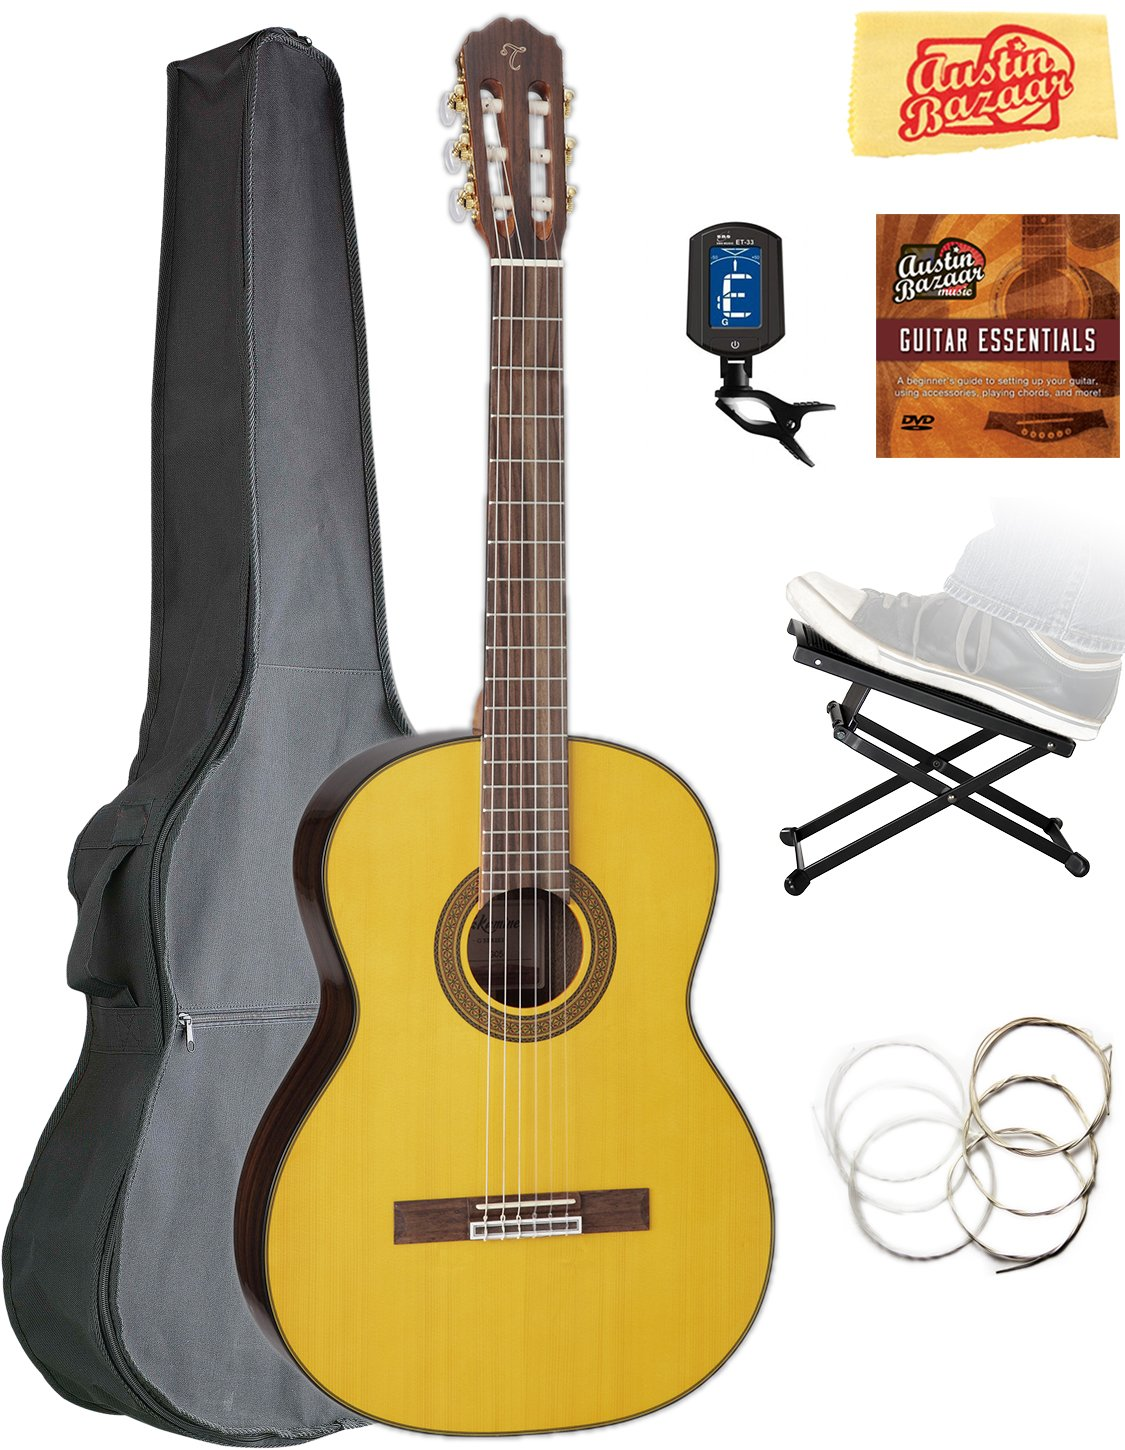 Takamine GC5 Classical Guitar - Natural Gloss Bundle with Gig Bag, Foot Stool, Tuner, Strings, Austin Bazaar Instructional DVD, and Polishing Cloth by Takamine